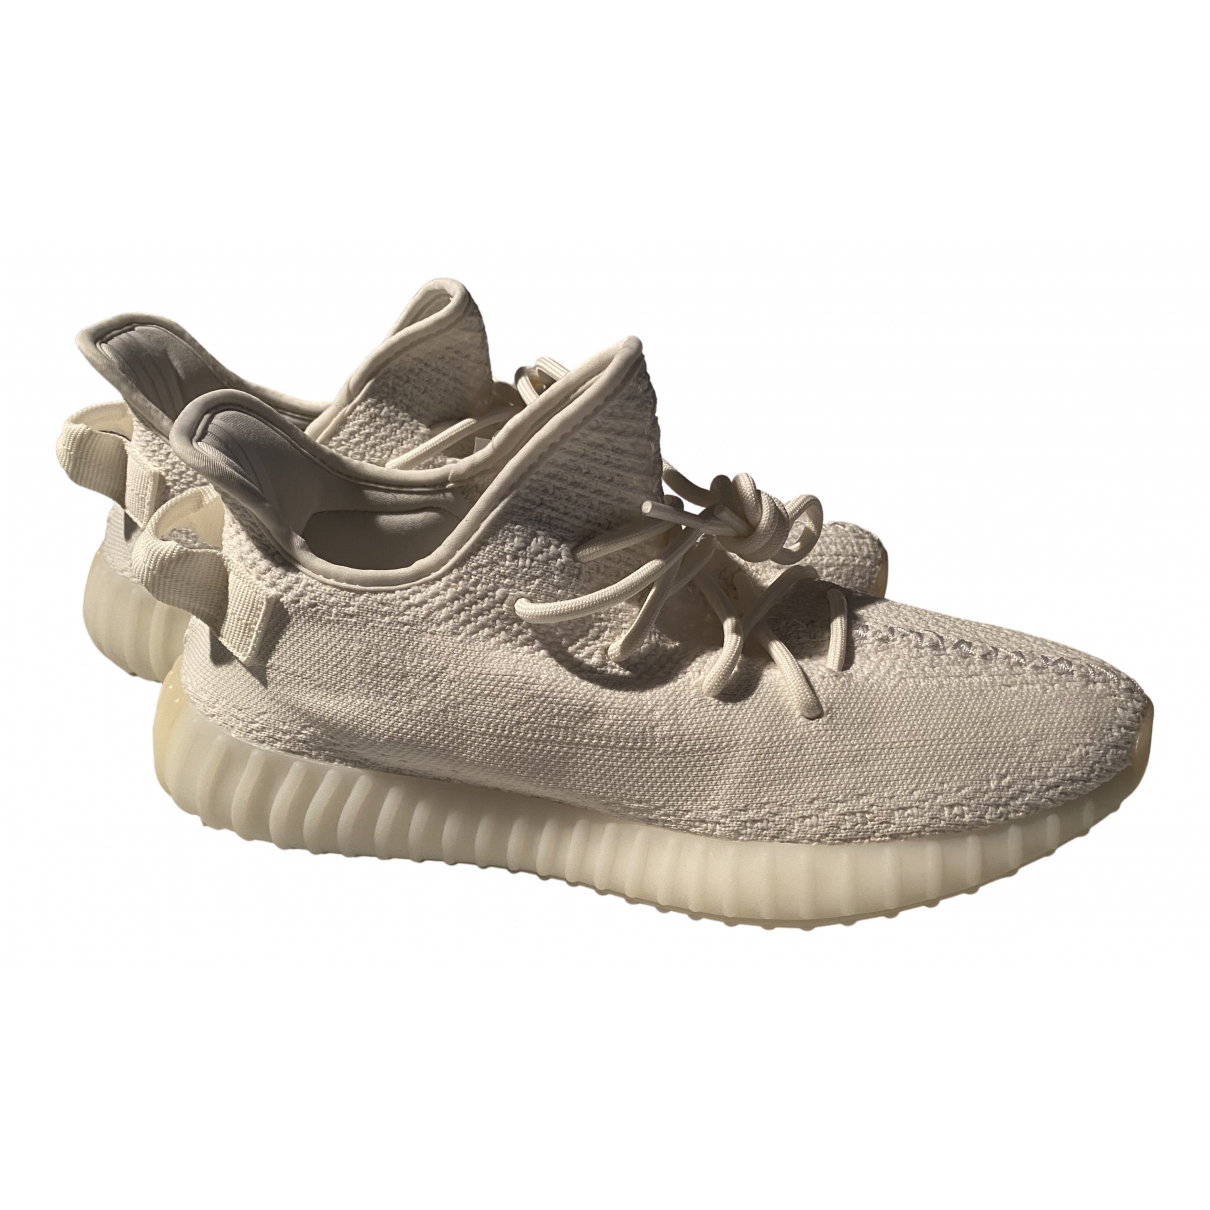 Yeezy X Adidas Boost 350 V2 Sneakers in  Weiss Polyester